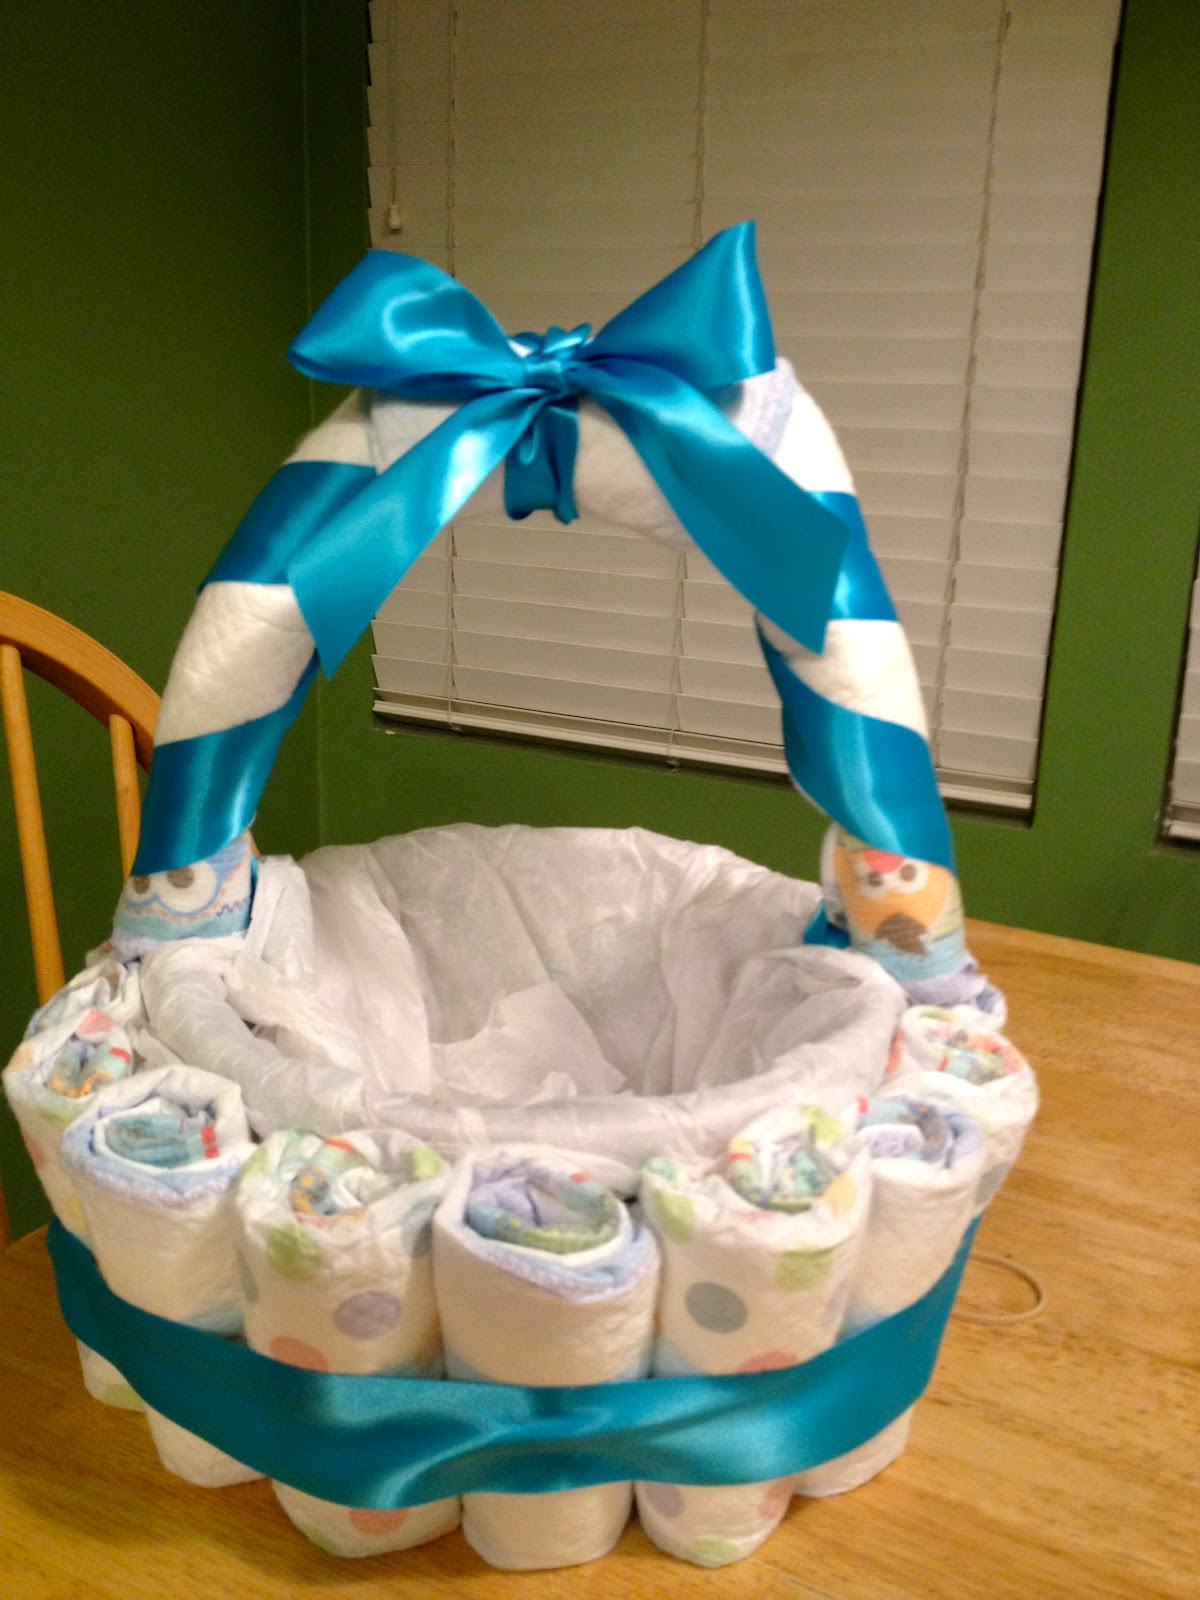 Baby Gift Basket Diapers : Someday baby diaper basket tutorial